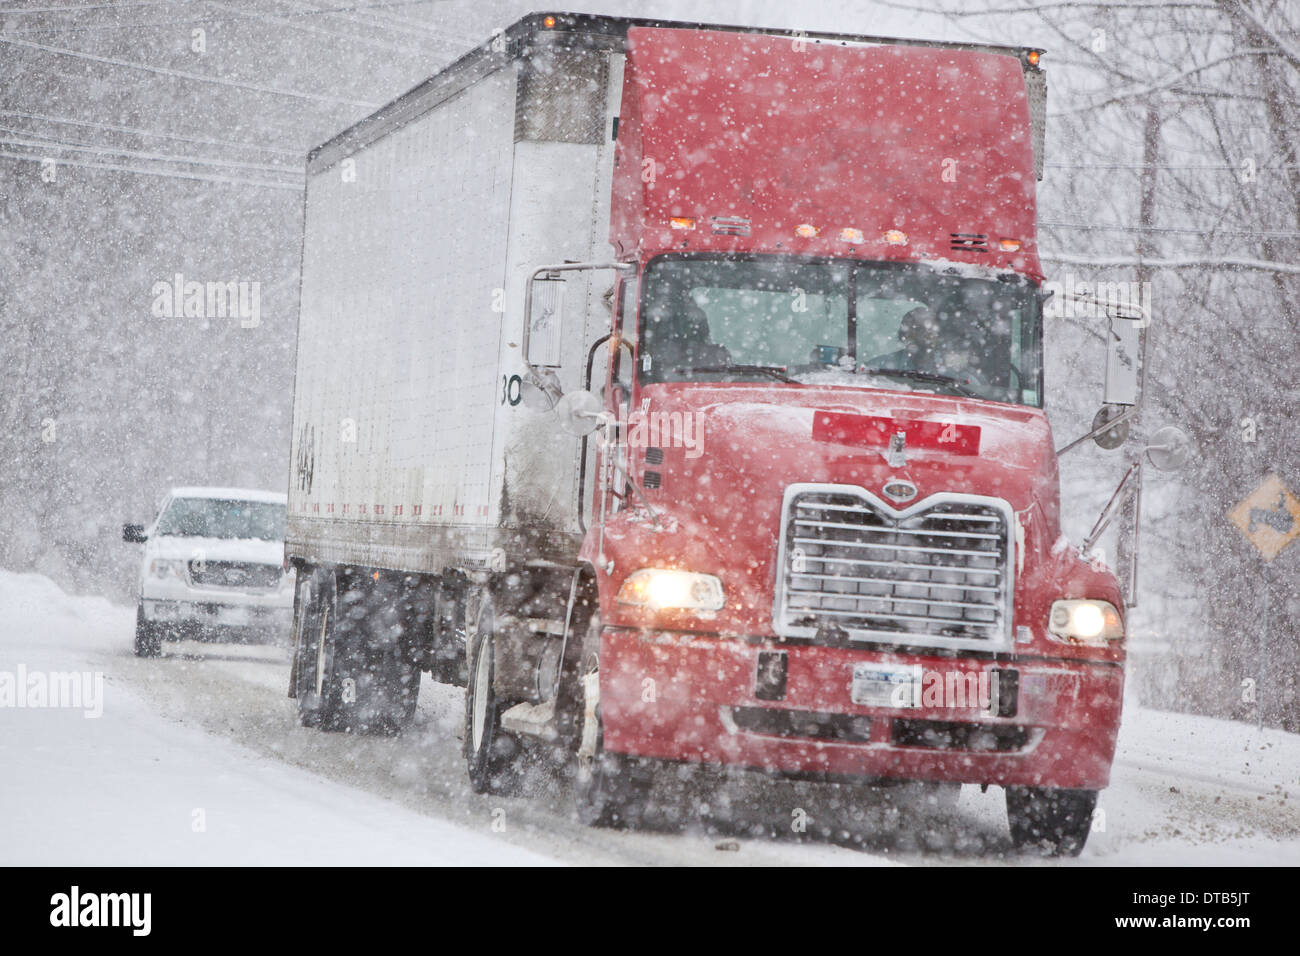 Truck on a highway during a winter storm - Stock Image